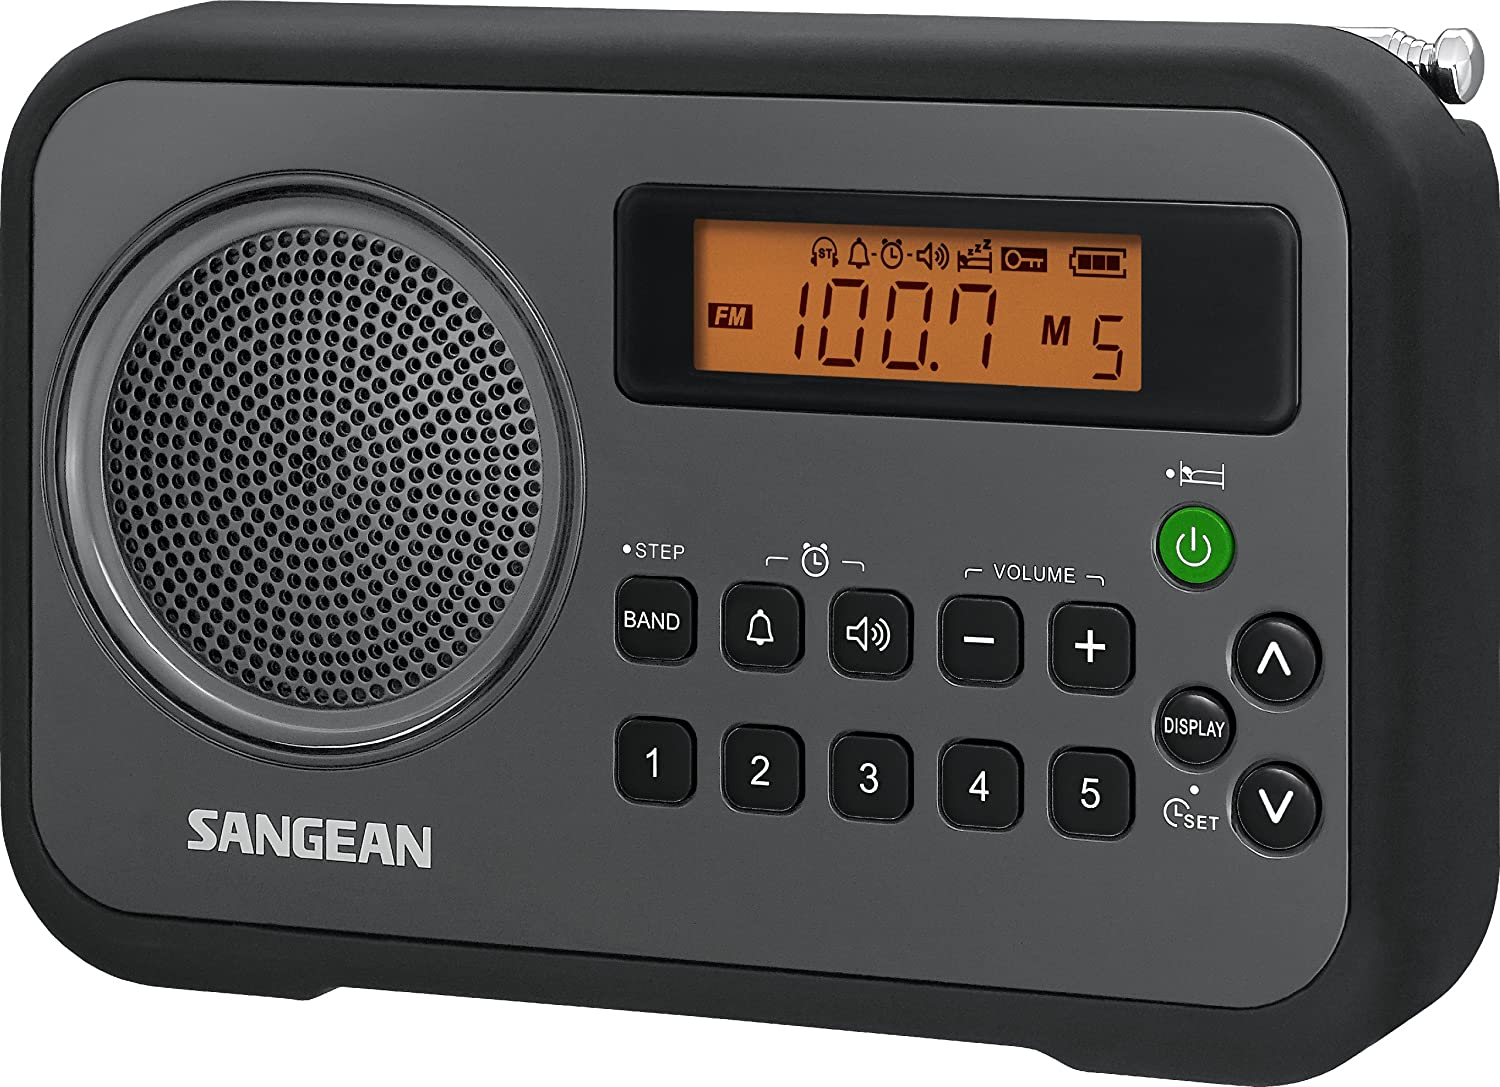 Top 10 Best Portable Radios In 2021 Reviews 22